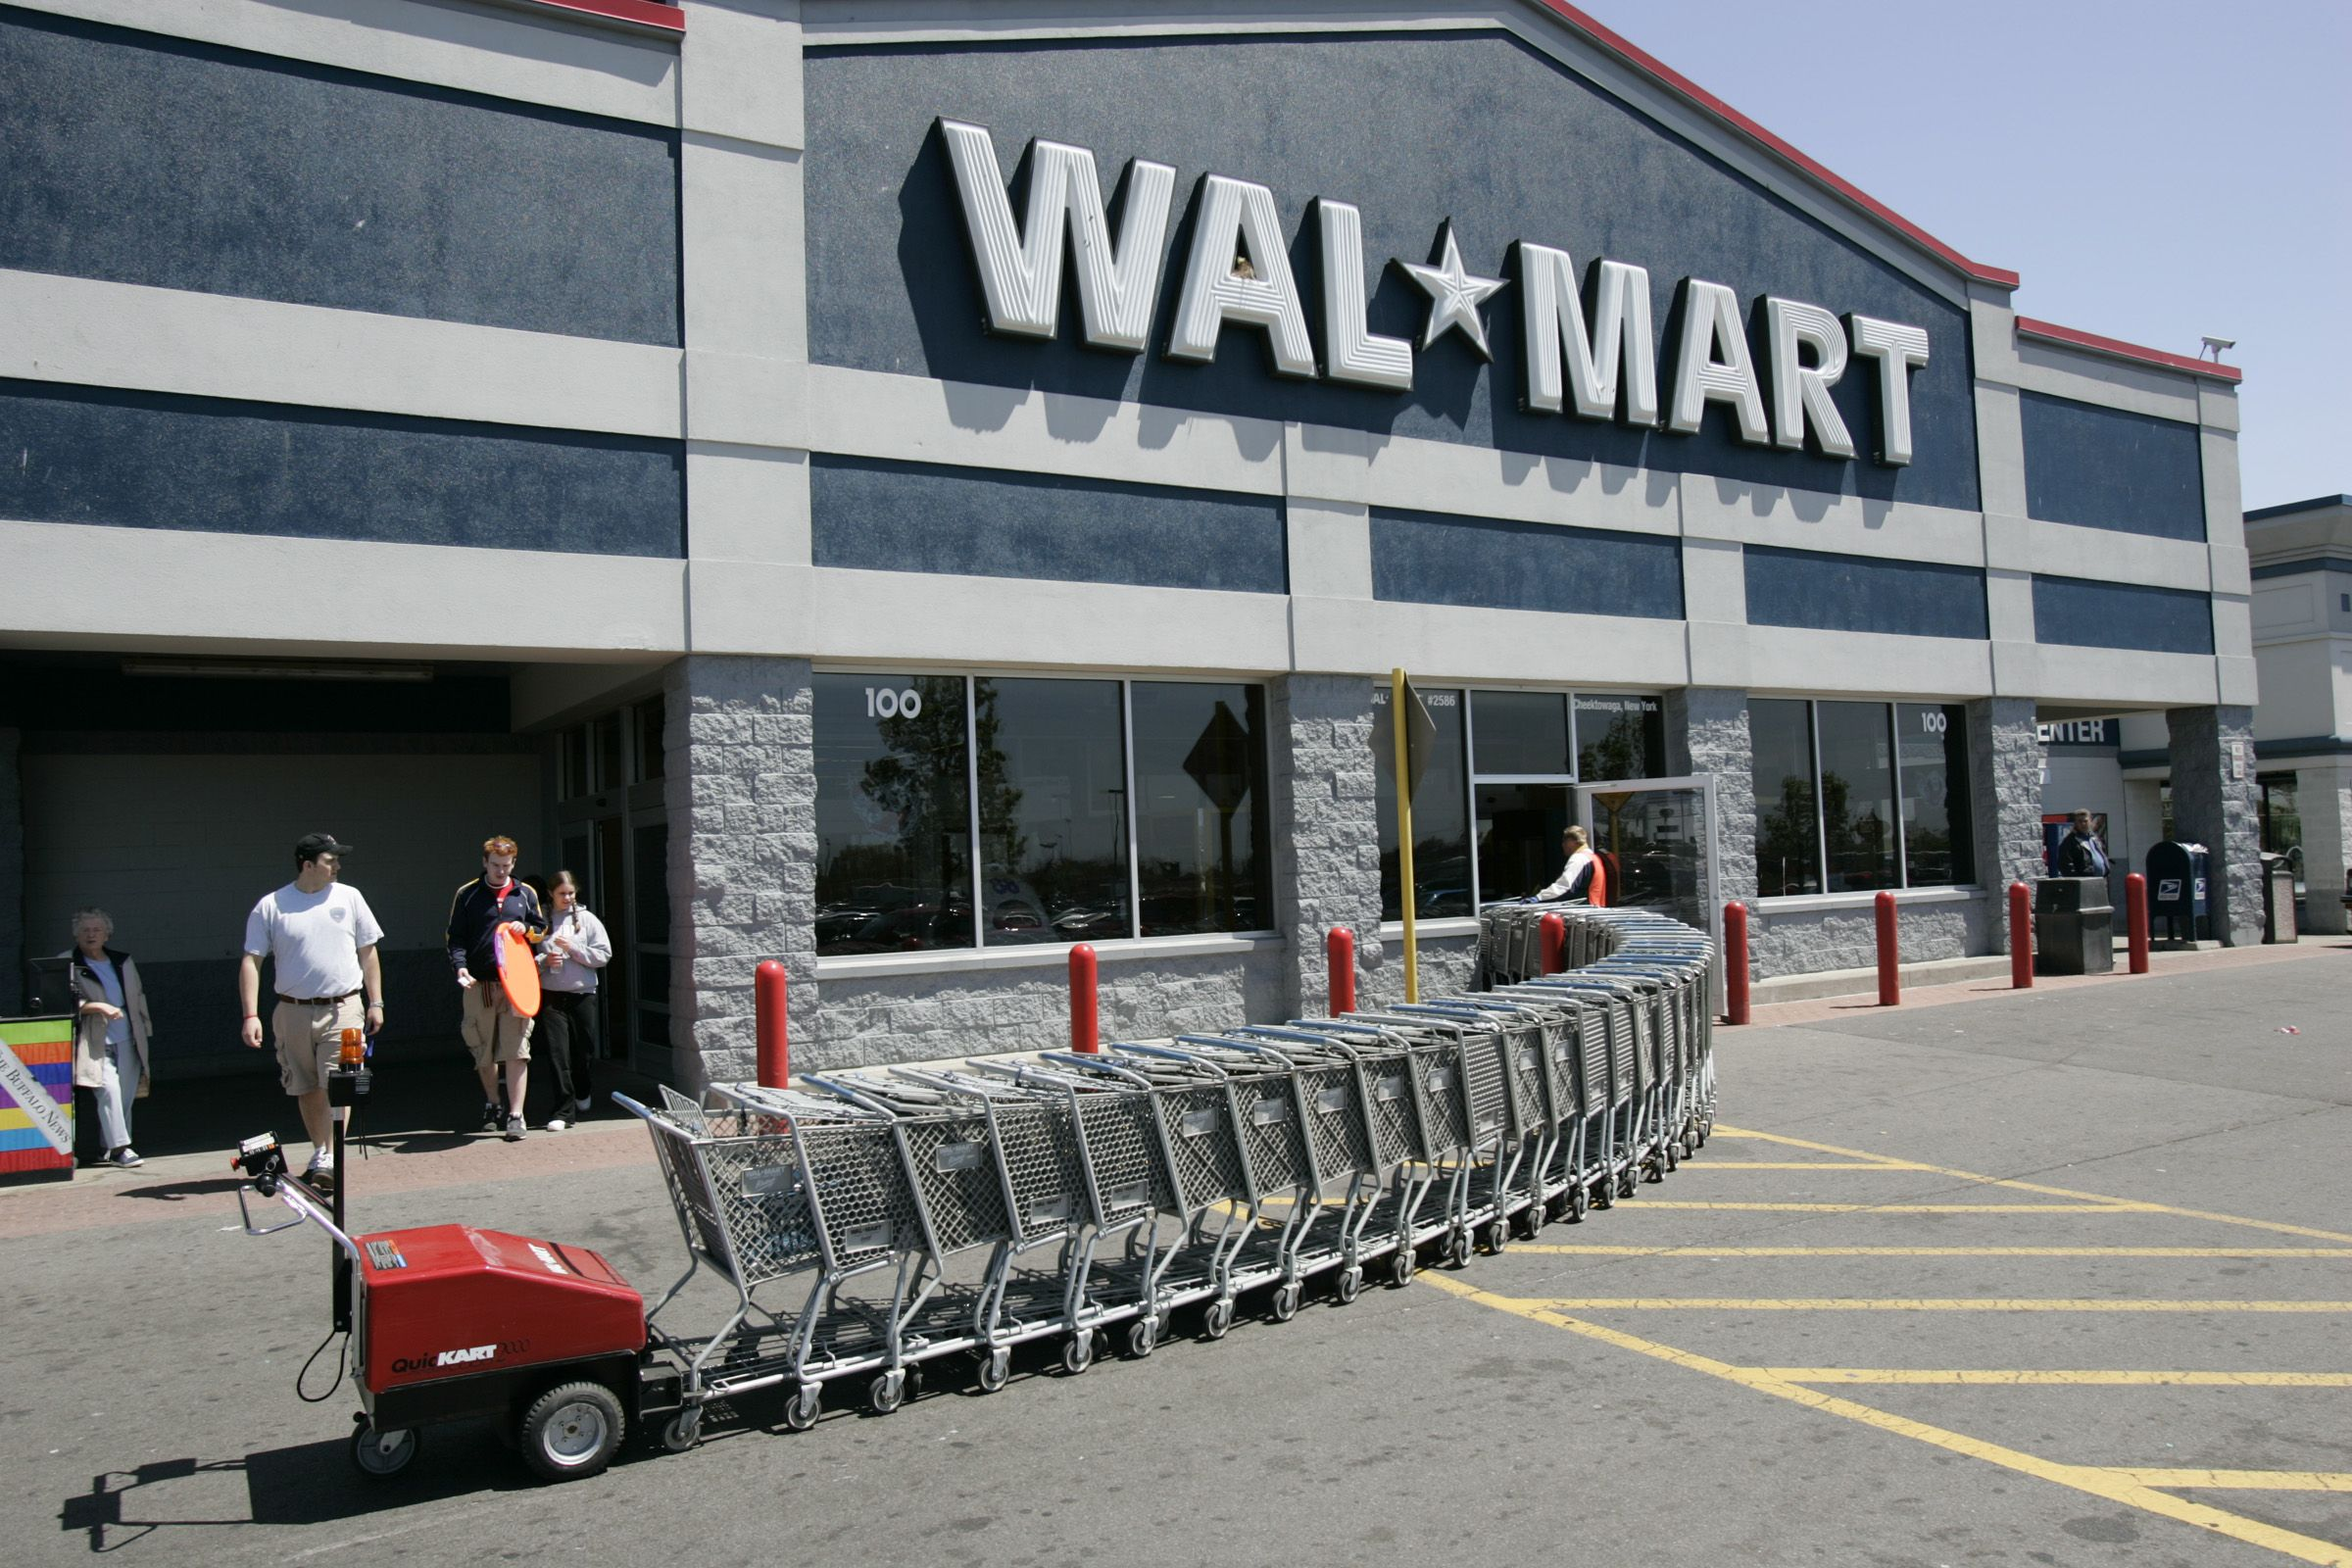 Customers leave Wal-Mart as a machine pushes shopping carts back to the store in Cheektowaga, N.Y. Wal-Mart Stores stores will be phasing out selling Amazon.com's Kindle tablet and e-readers, the world's largest retailer said Thursday, Sept. 20, 2012Wal-Mart Stores-Kindle, CHEEKTOWAGA, USA